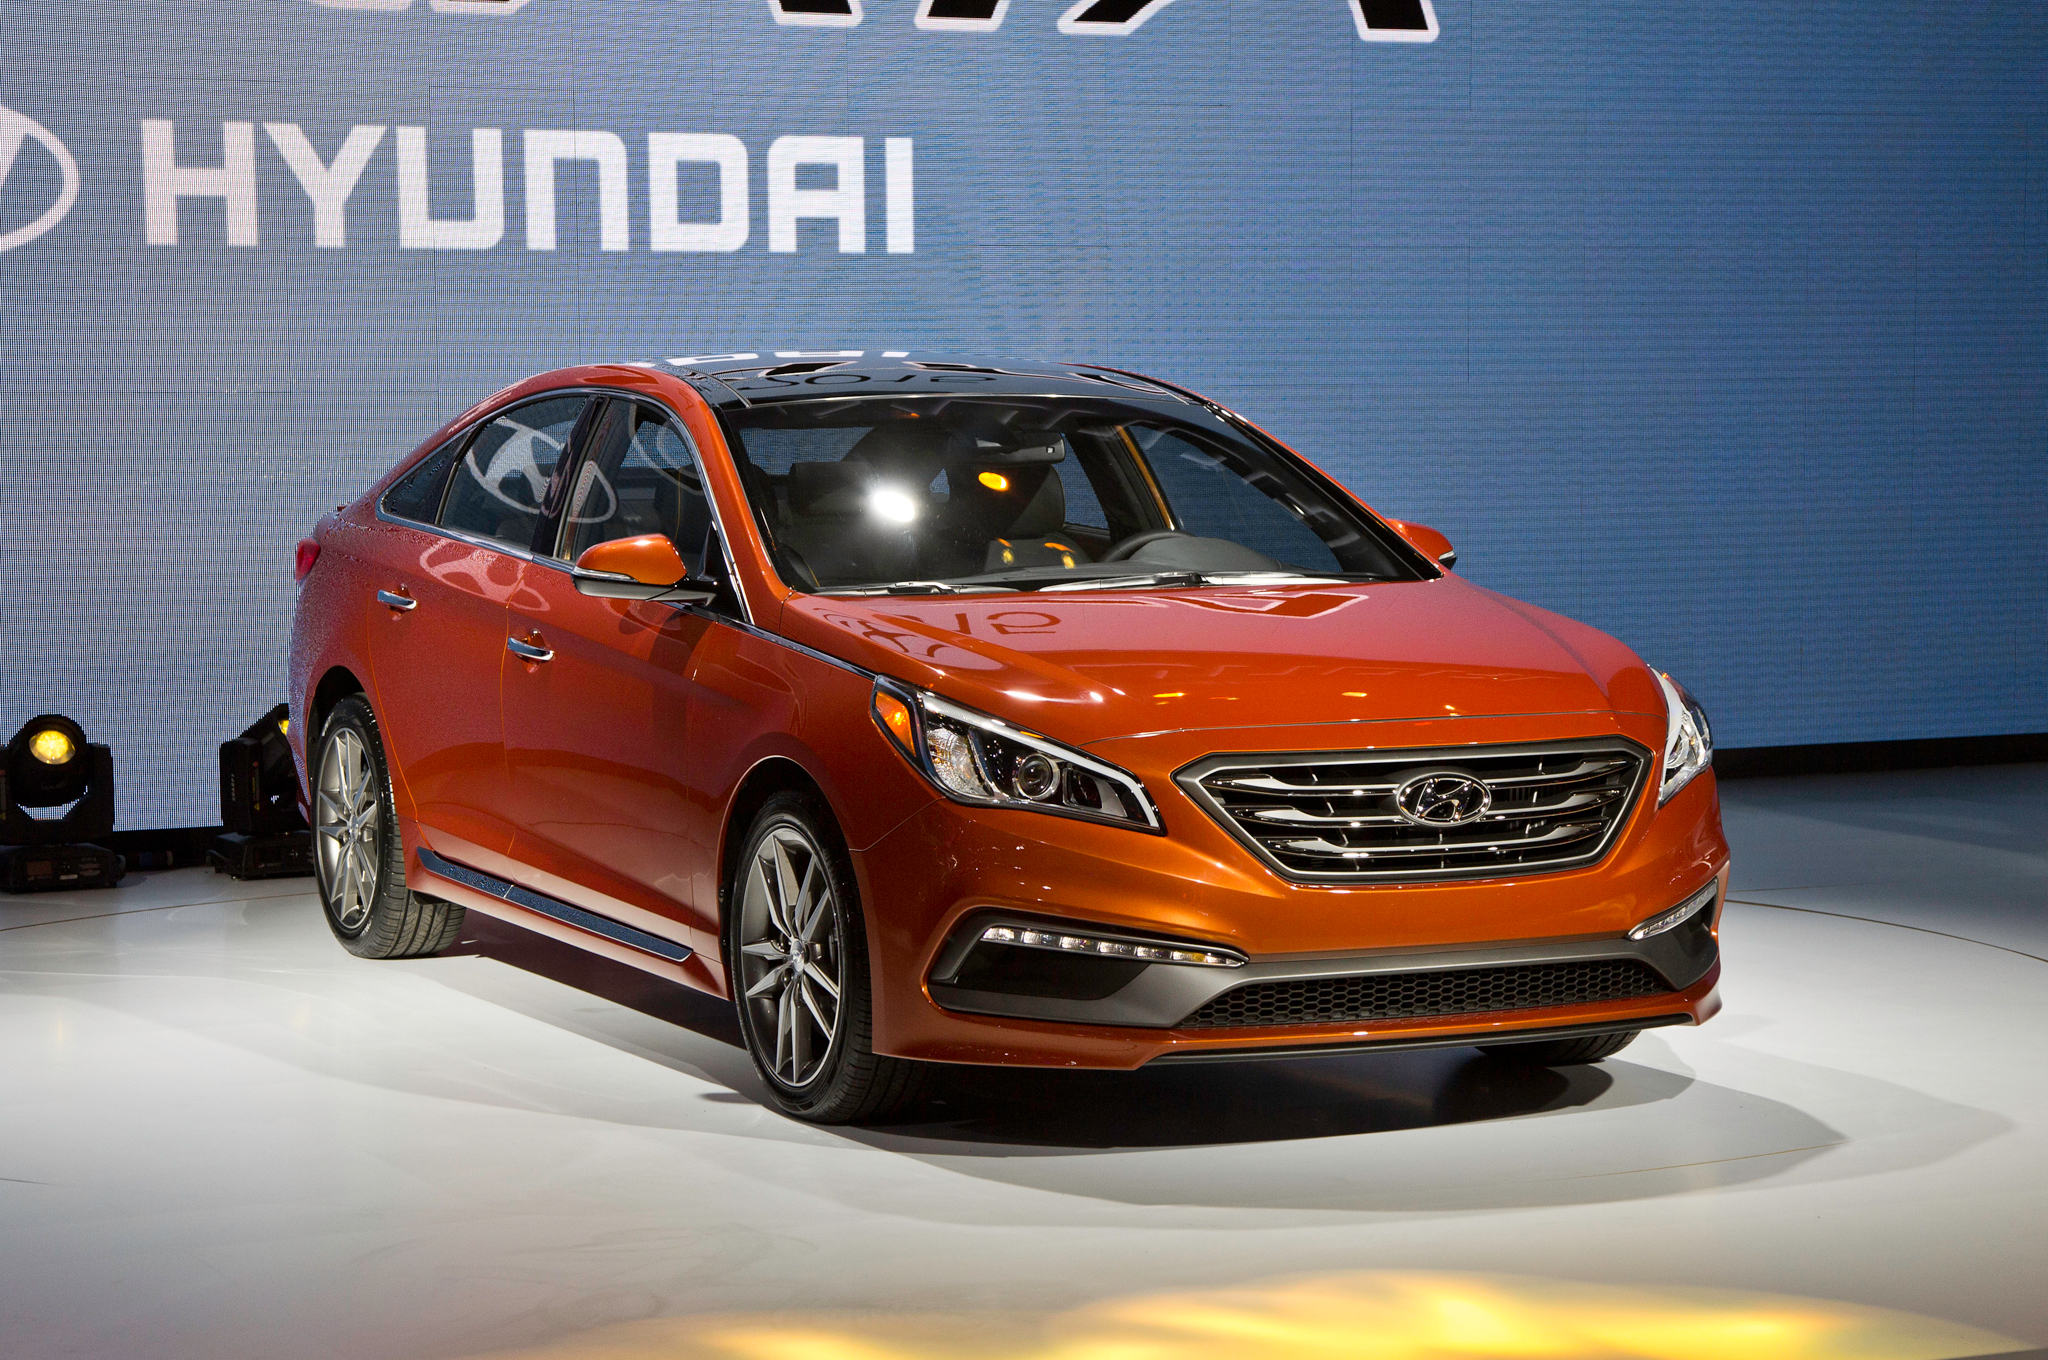 2015 Hyundai Sonata Preview (Photo 11 of 11)